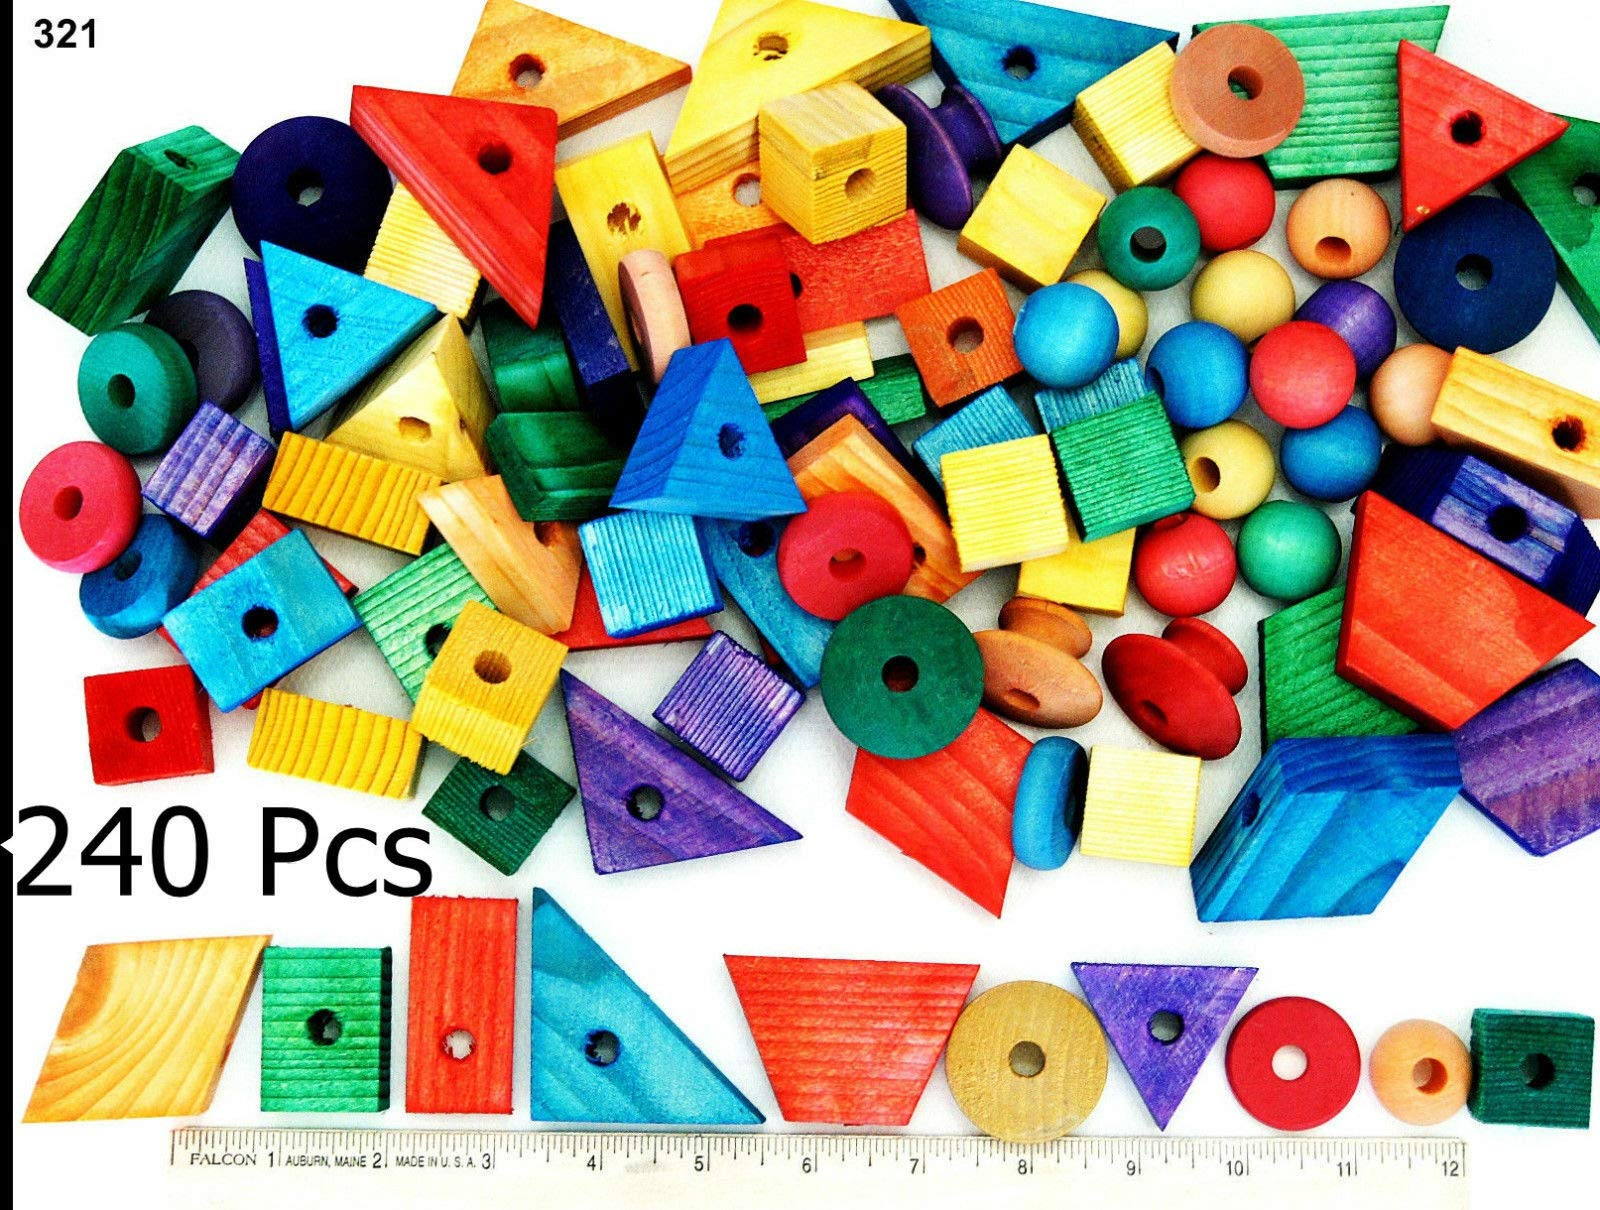 Parrot toys Wood Wooden Colored 240 Blocks Pet Bird Parts Toys Making Toy Mini Macaw by Parrot toys